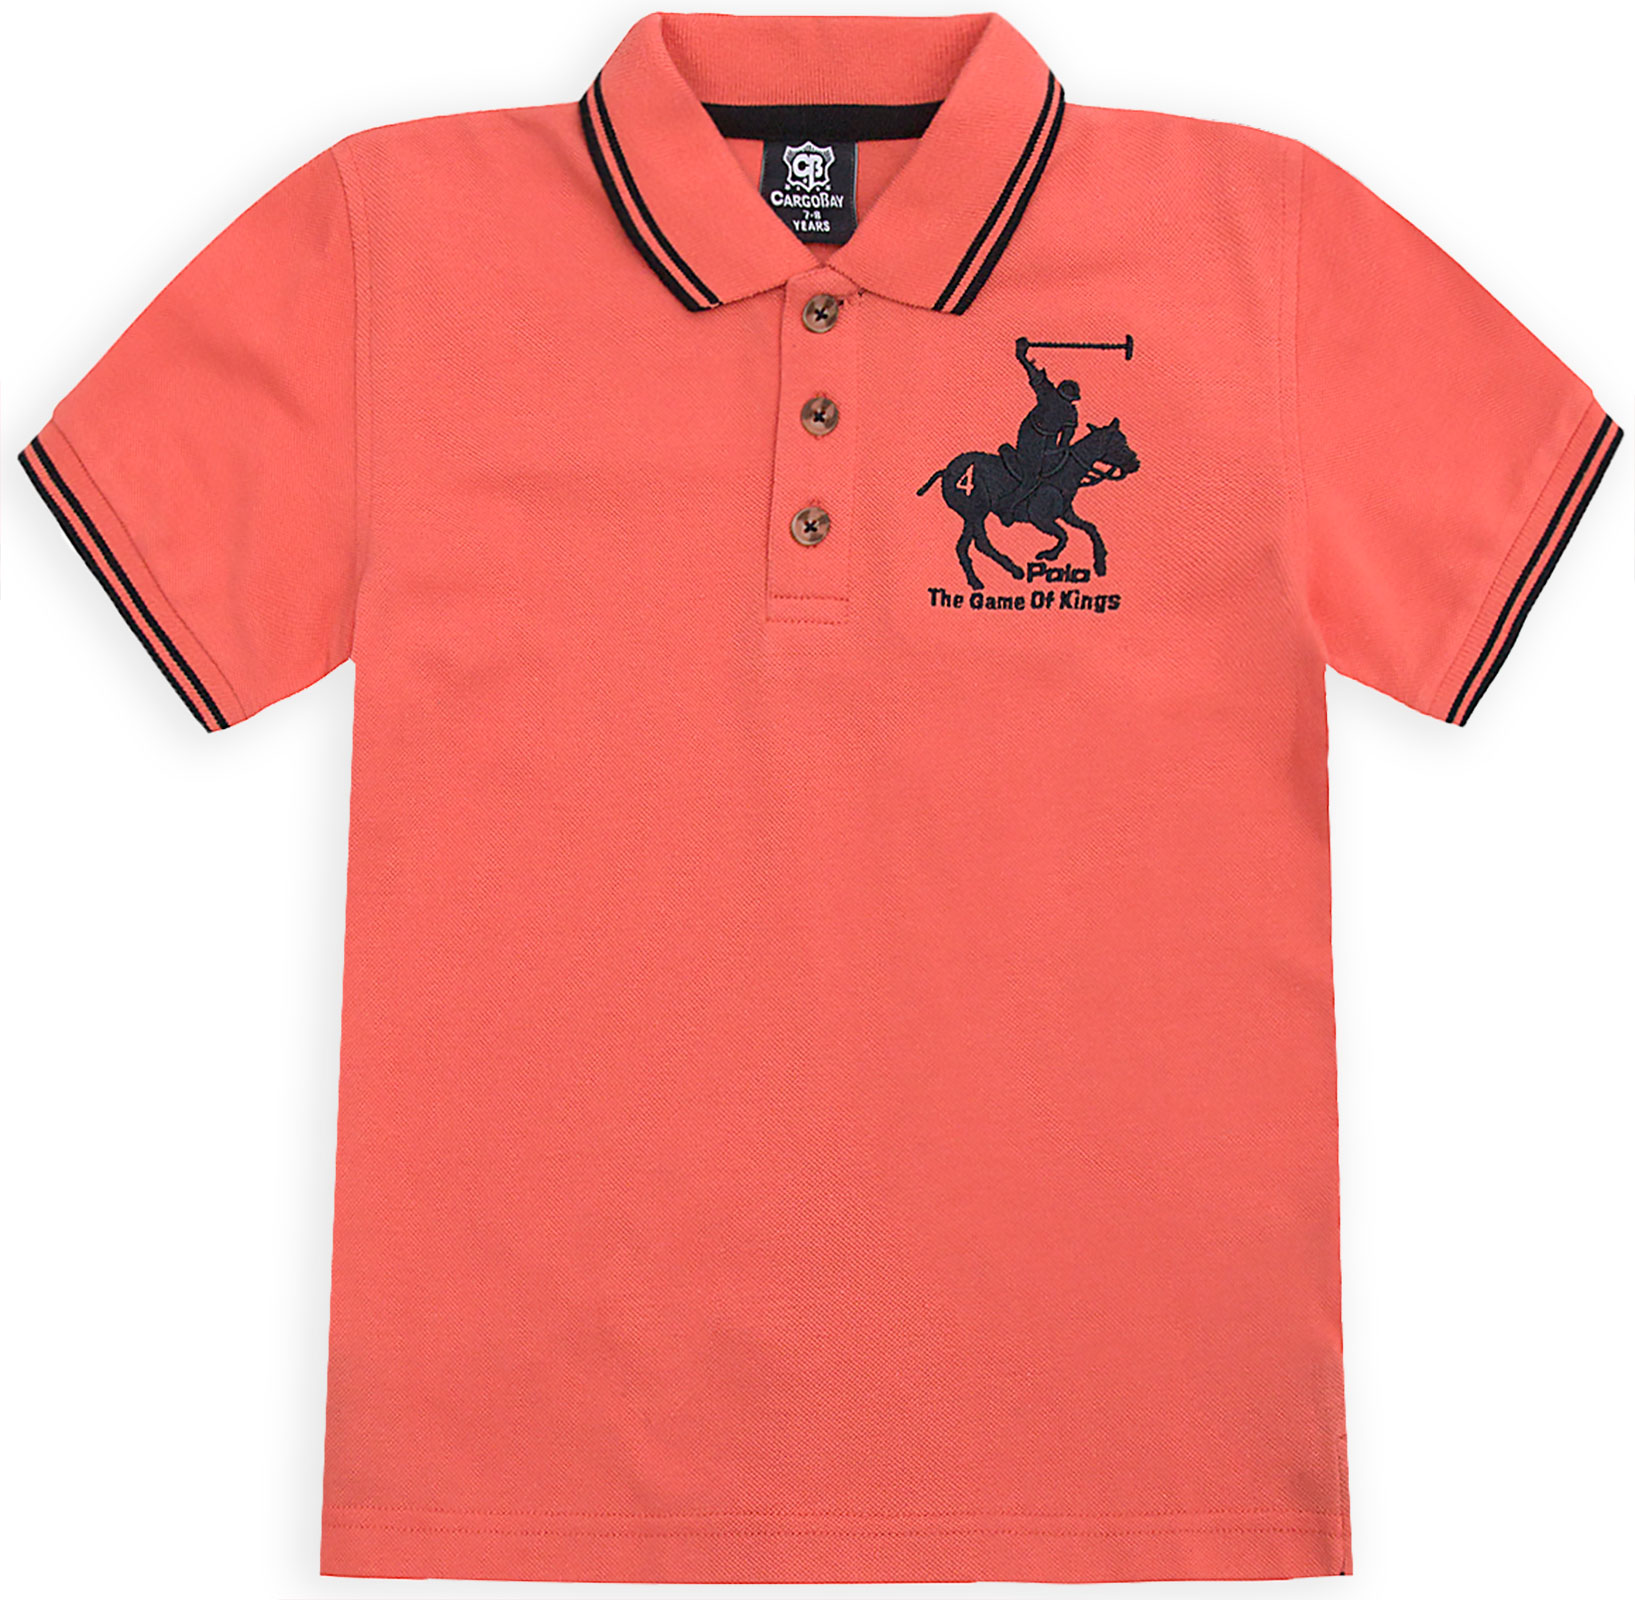 Boys-T-Shirt-Horse-Embroidery-Polo-Cotton-Top-Age-2-3-4-5-6-7-8-9-10-11-12-13-Yr thumbnail 6